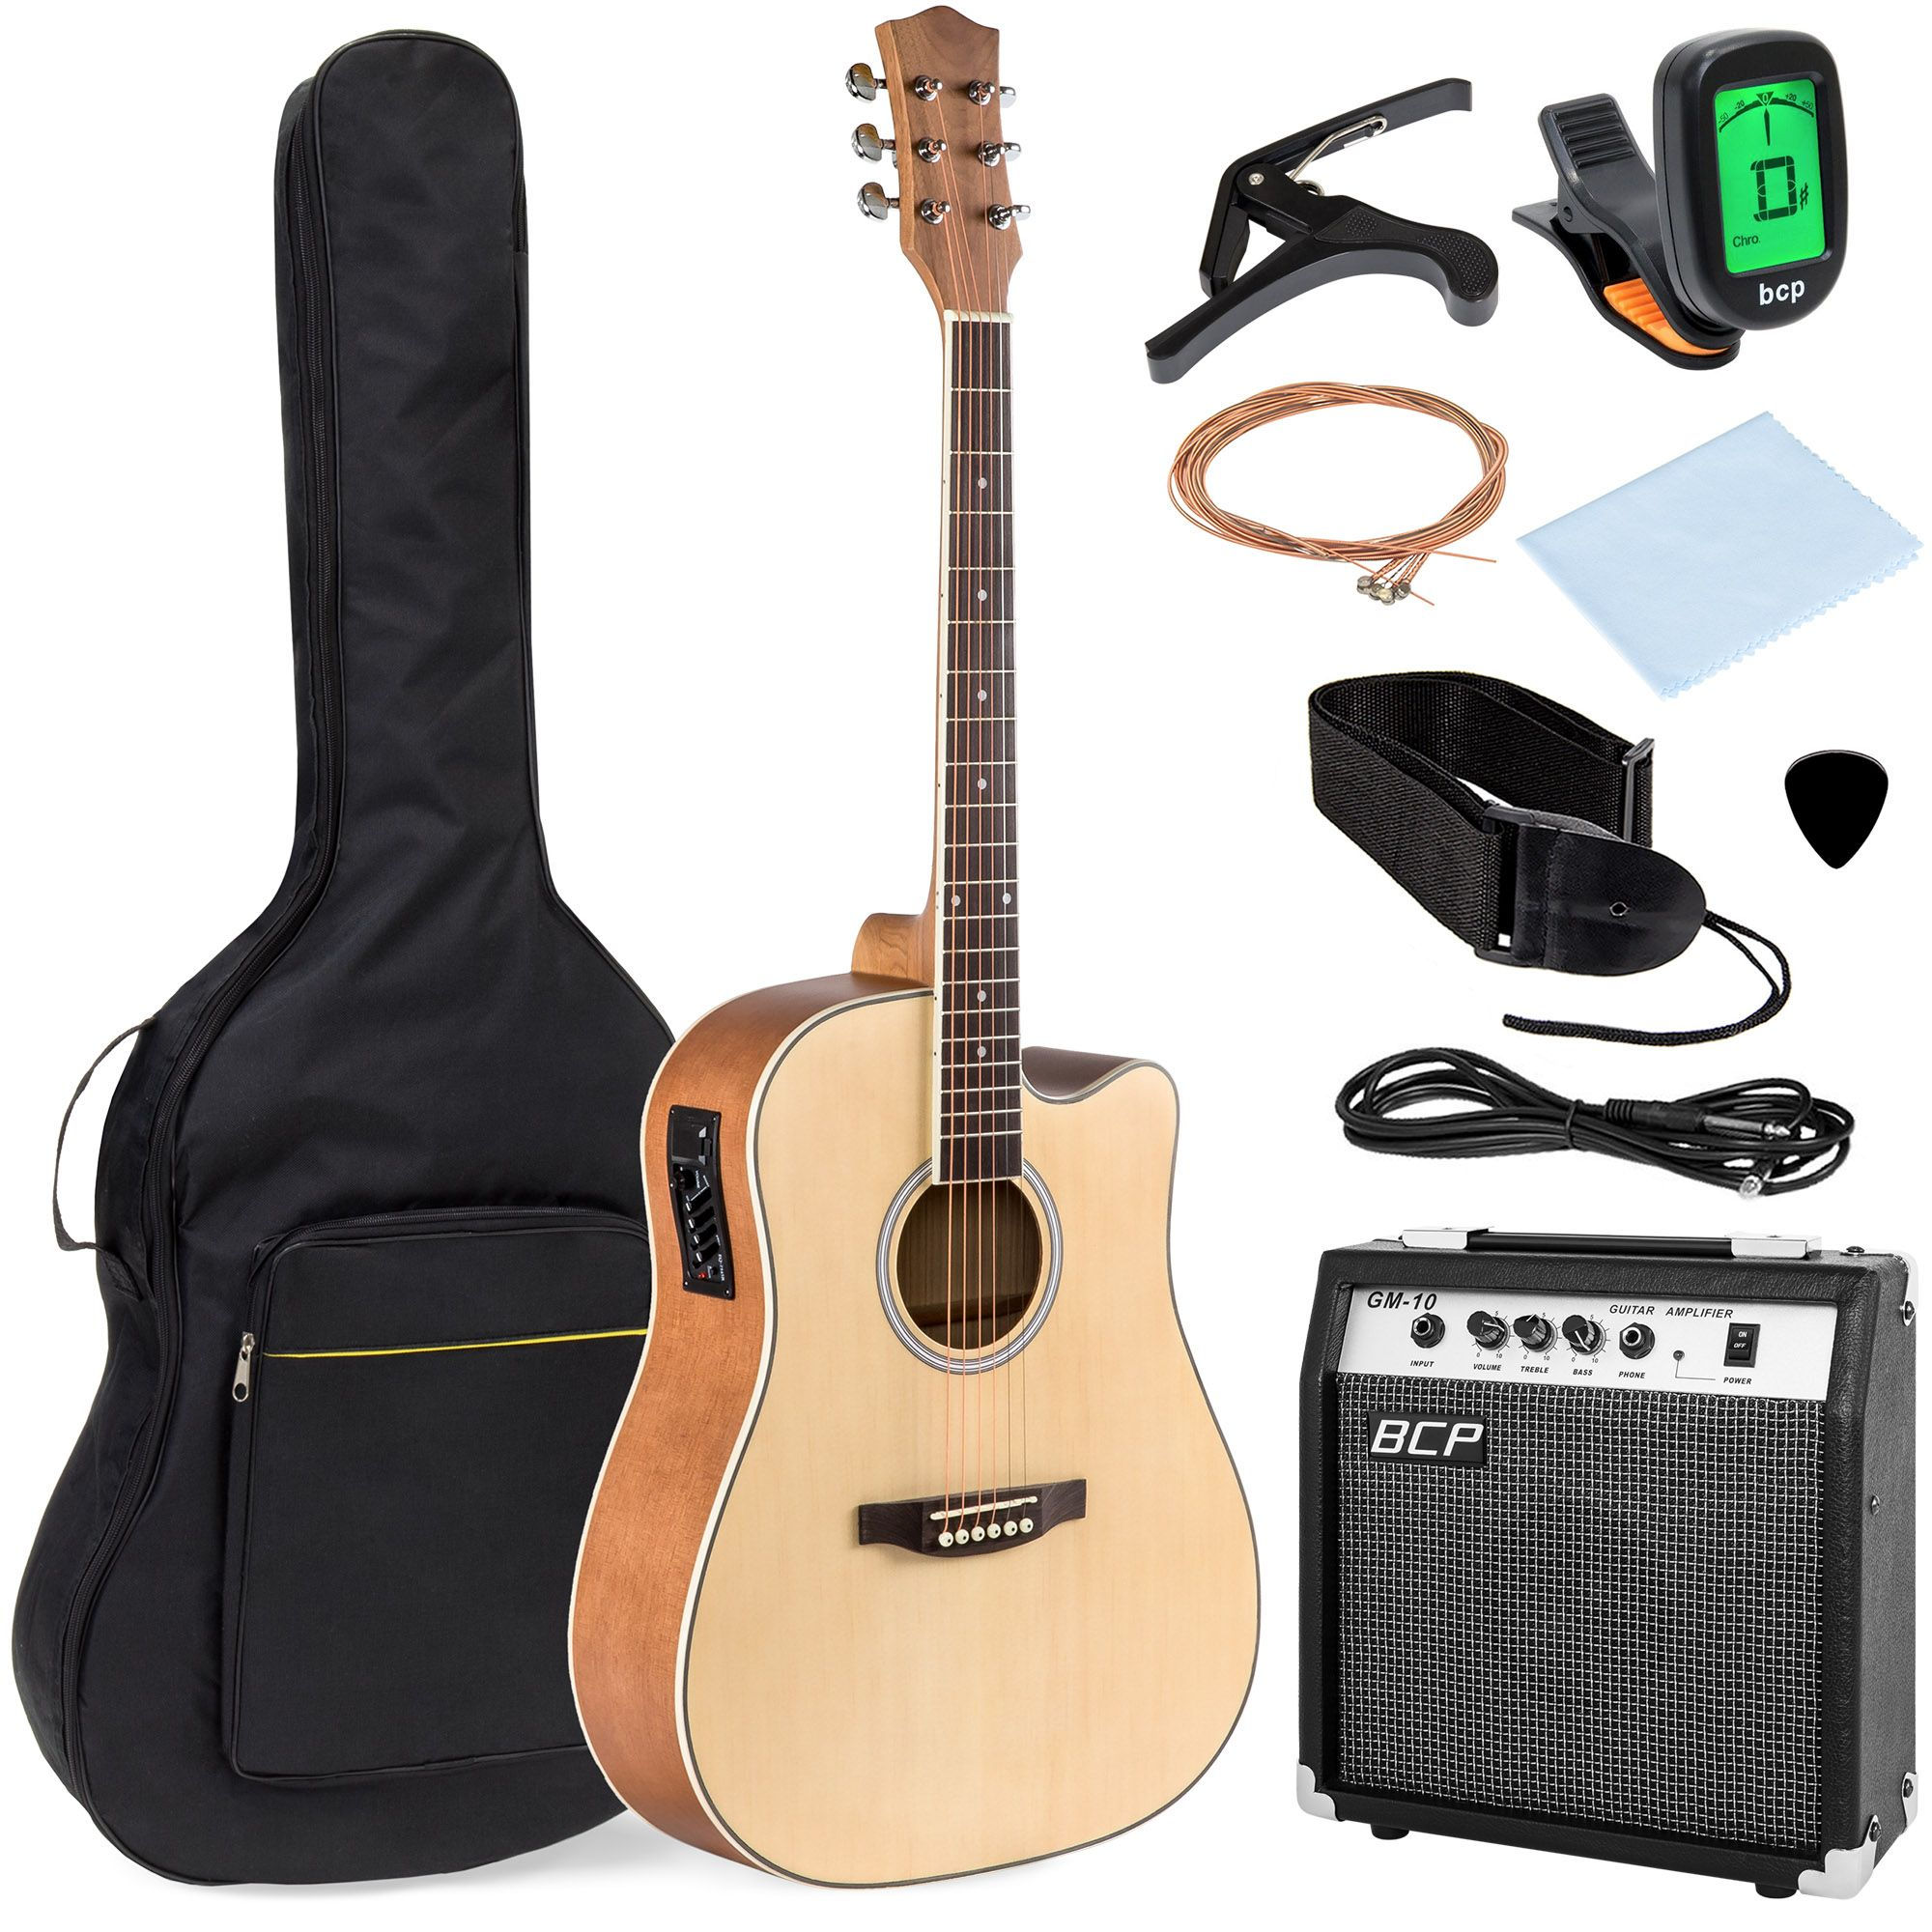 Best Choice Products Beginner Acoustic Electric Guitar Starter Set 41in W All Wood Cutaway Design Case Natural Walmart Com In 2021 Acoustic Electric Guitar Acoustic Electric Guitar